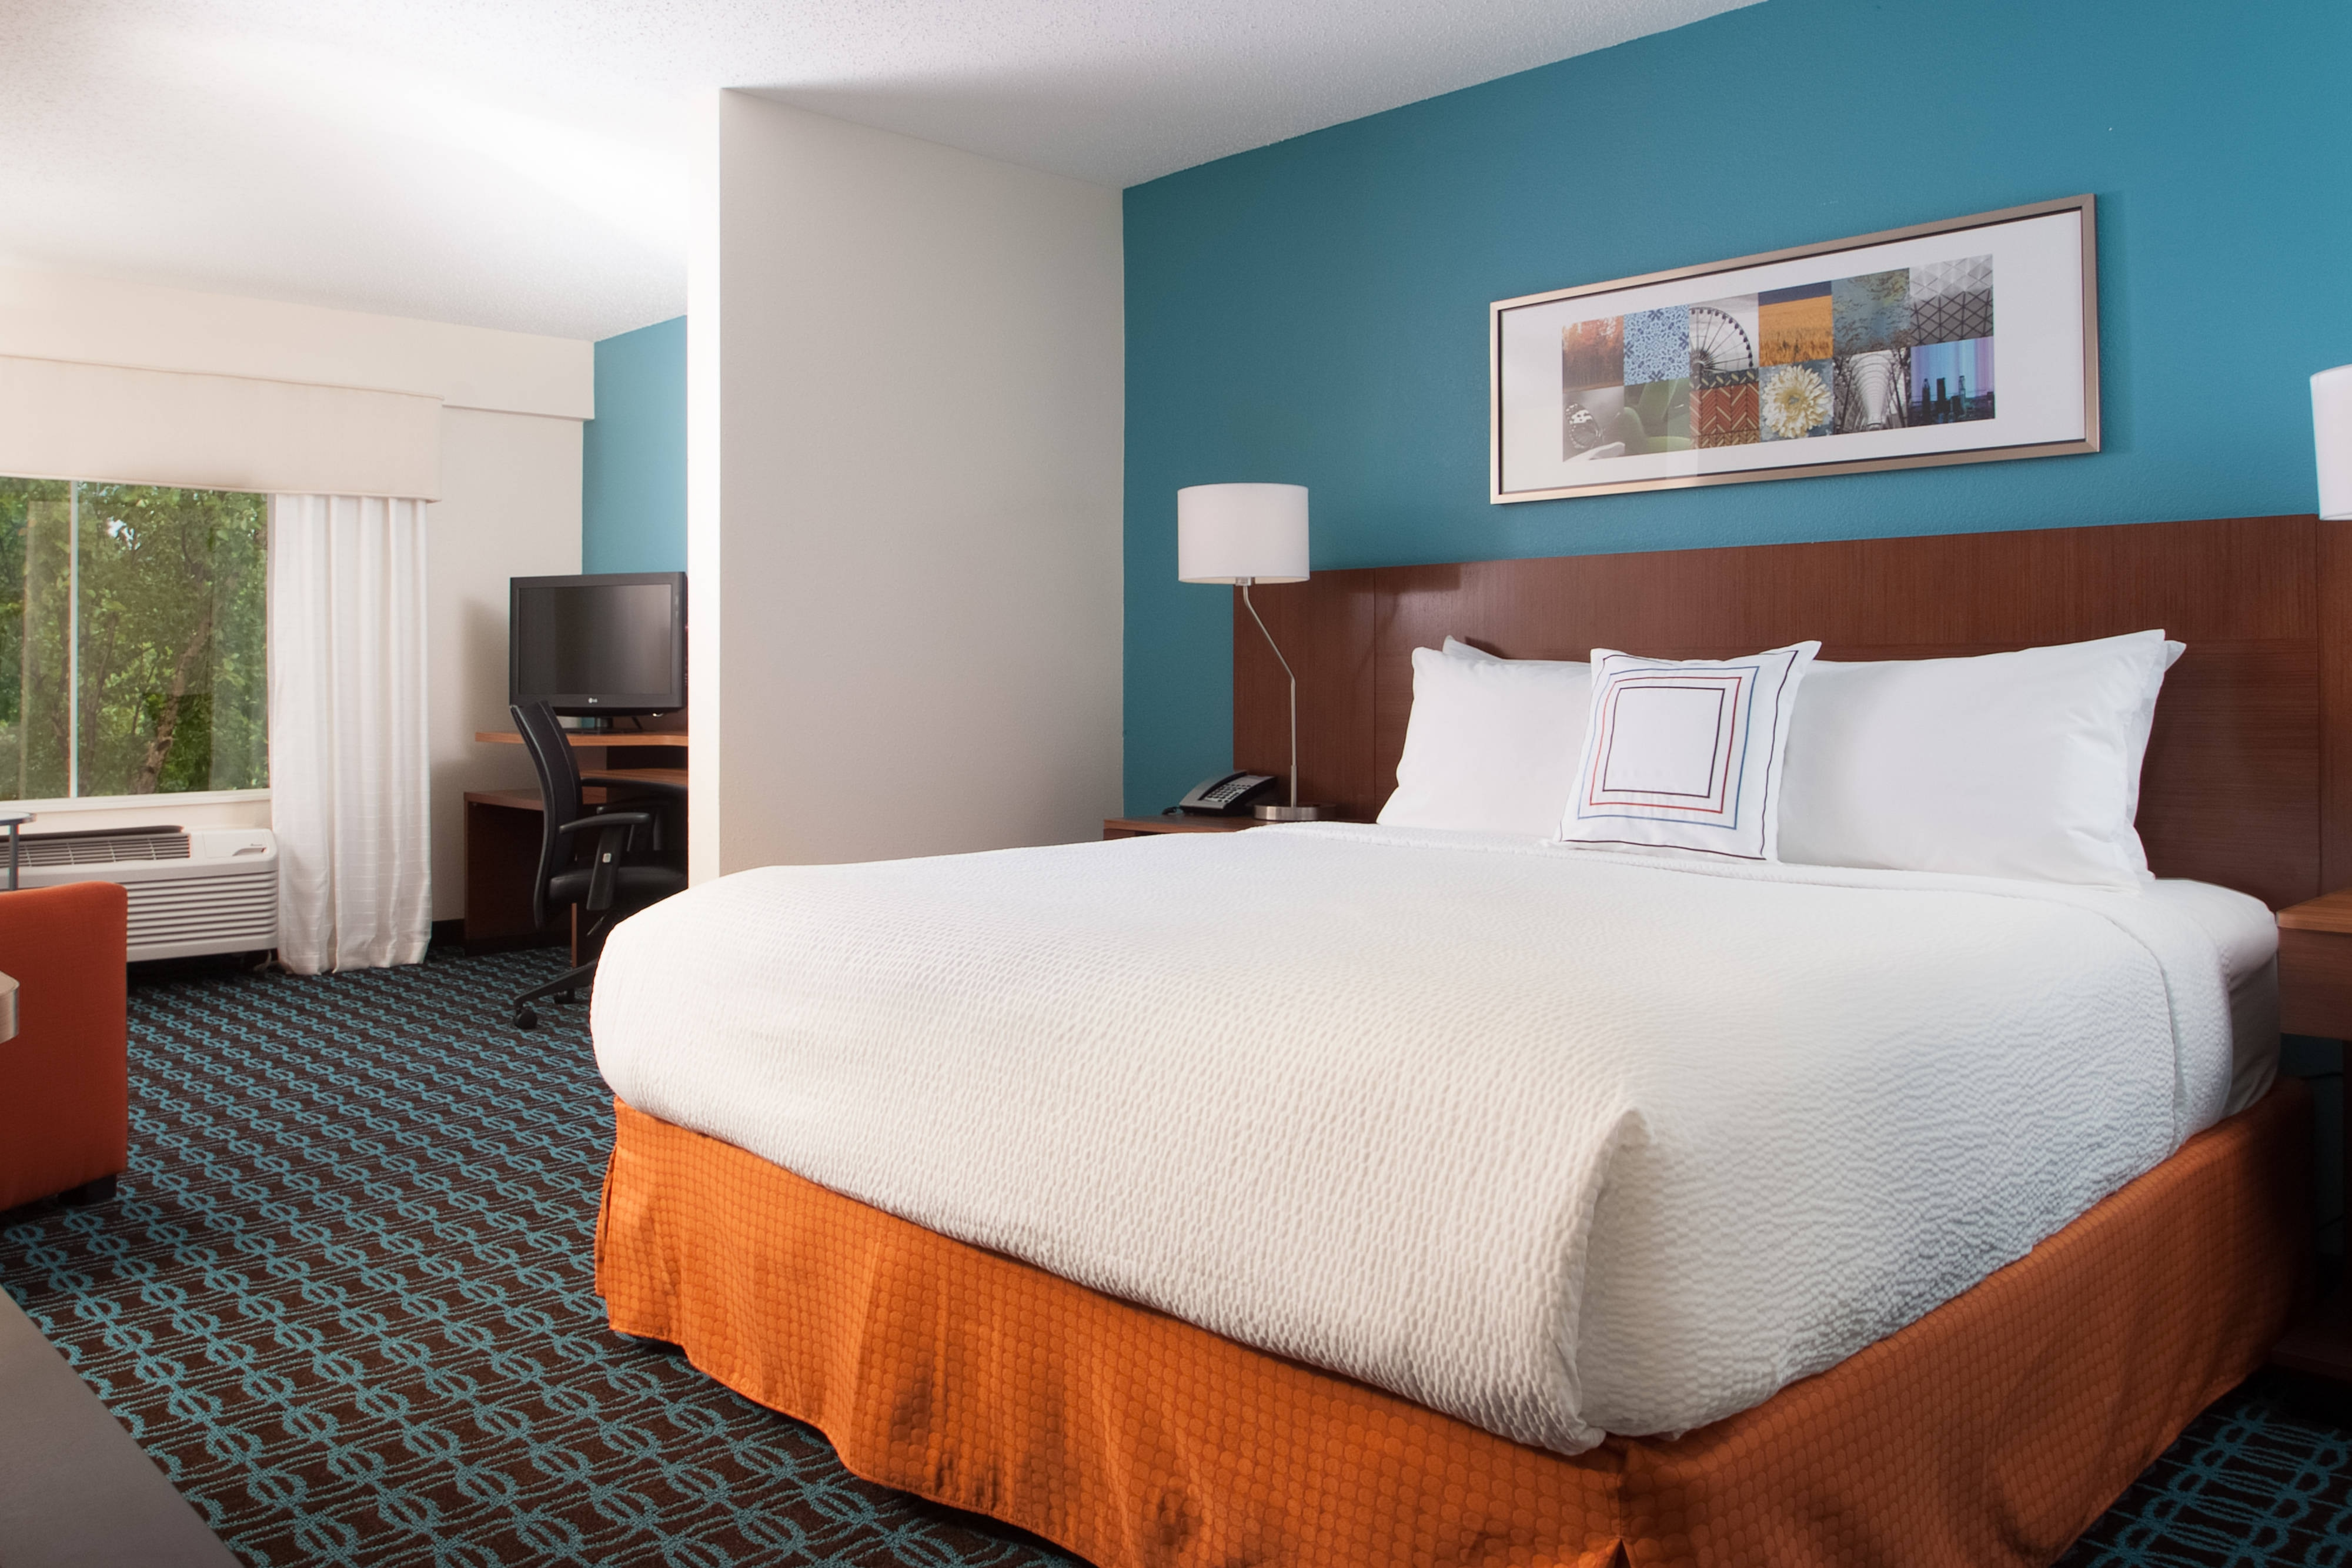 Hotels with Suites in Gastonia NC